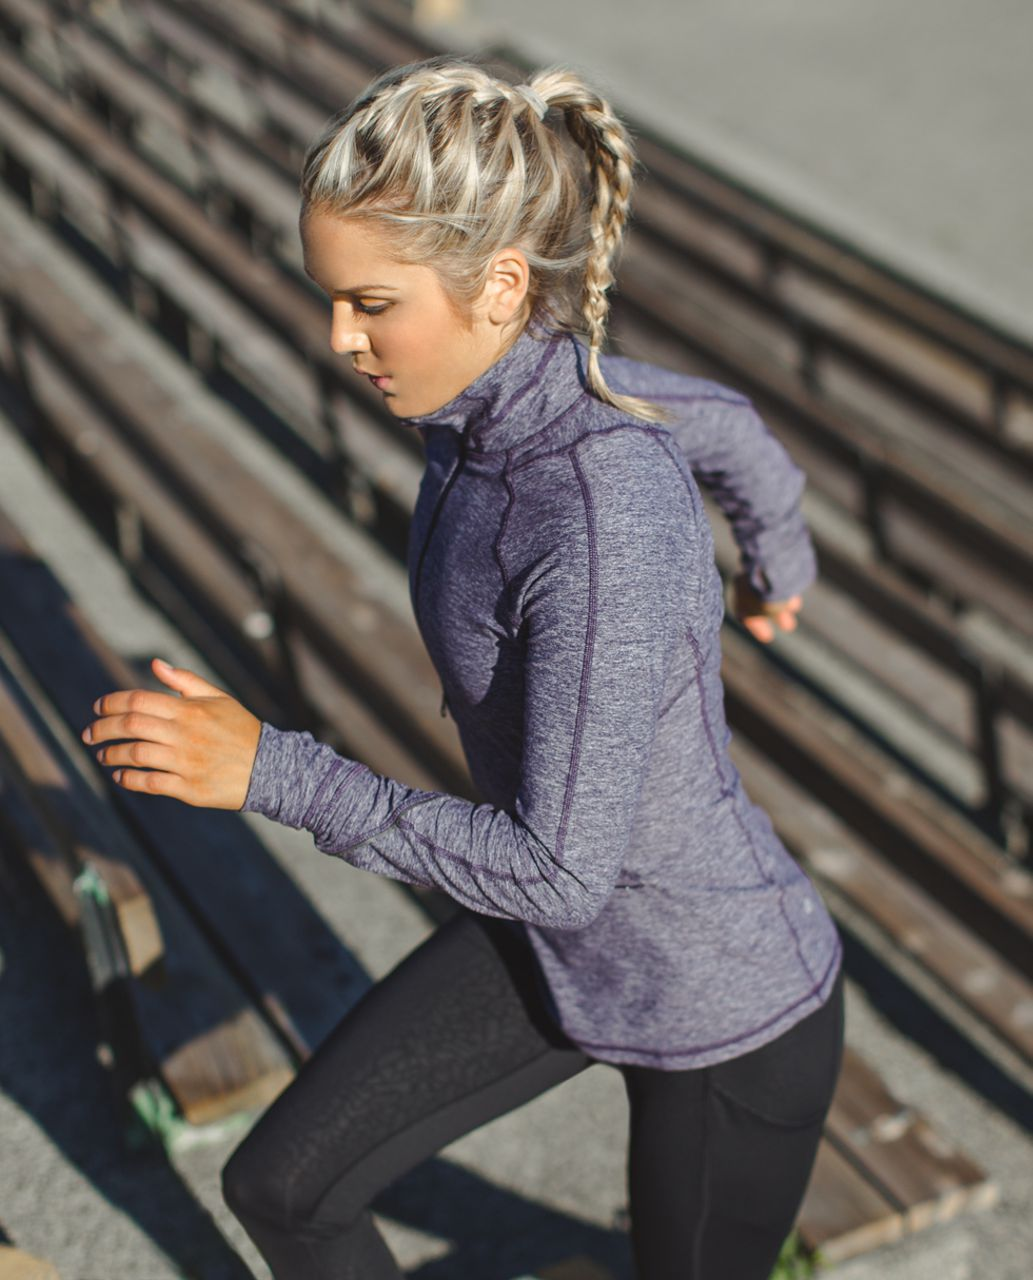 Lululemon Race Your Pace 1/2 Zip - Heathered Black Grape